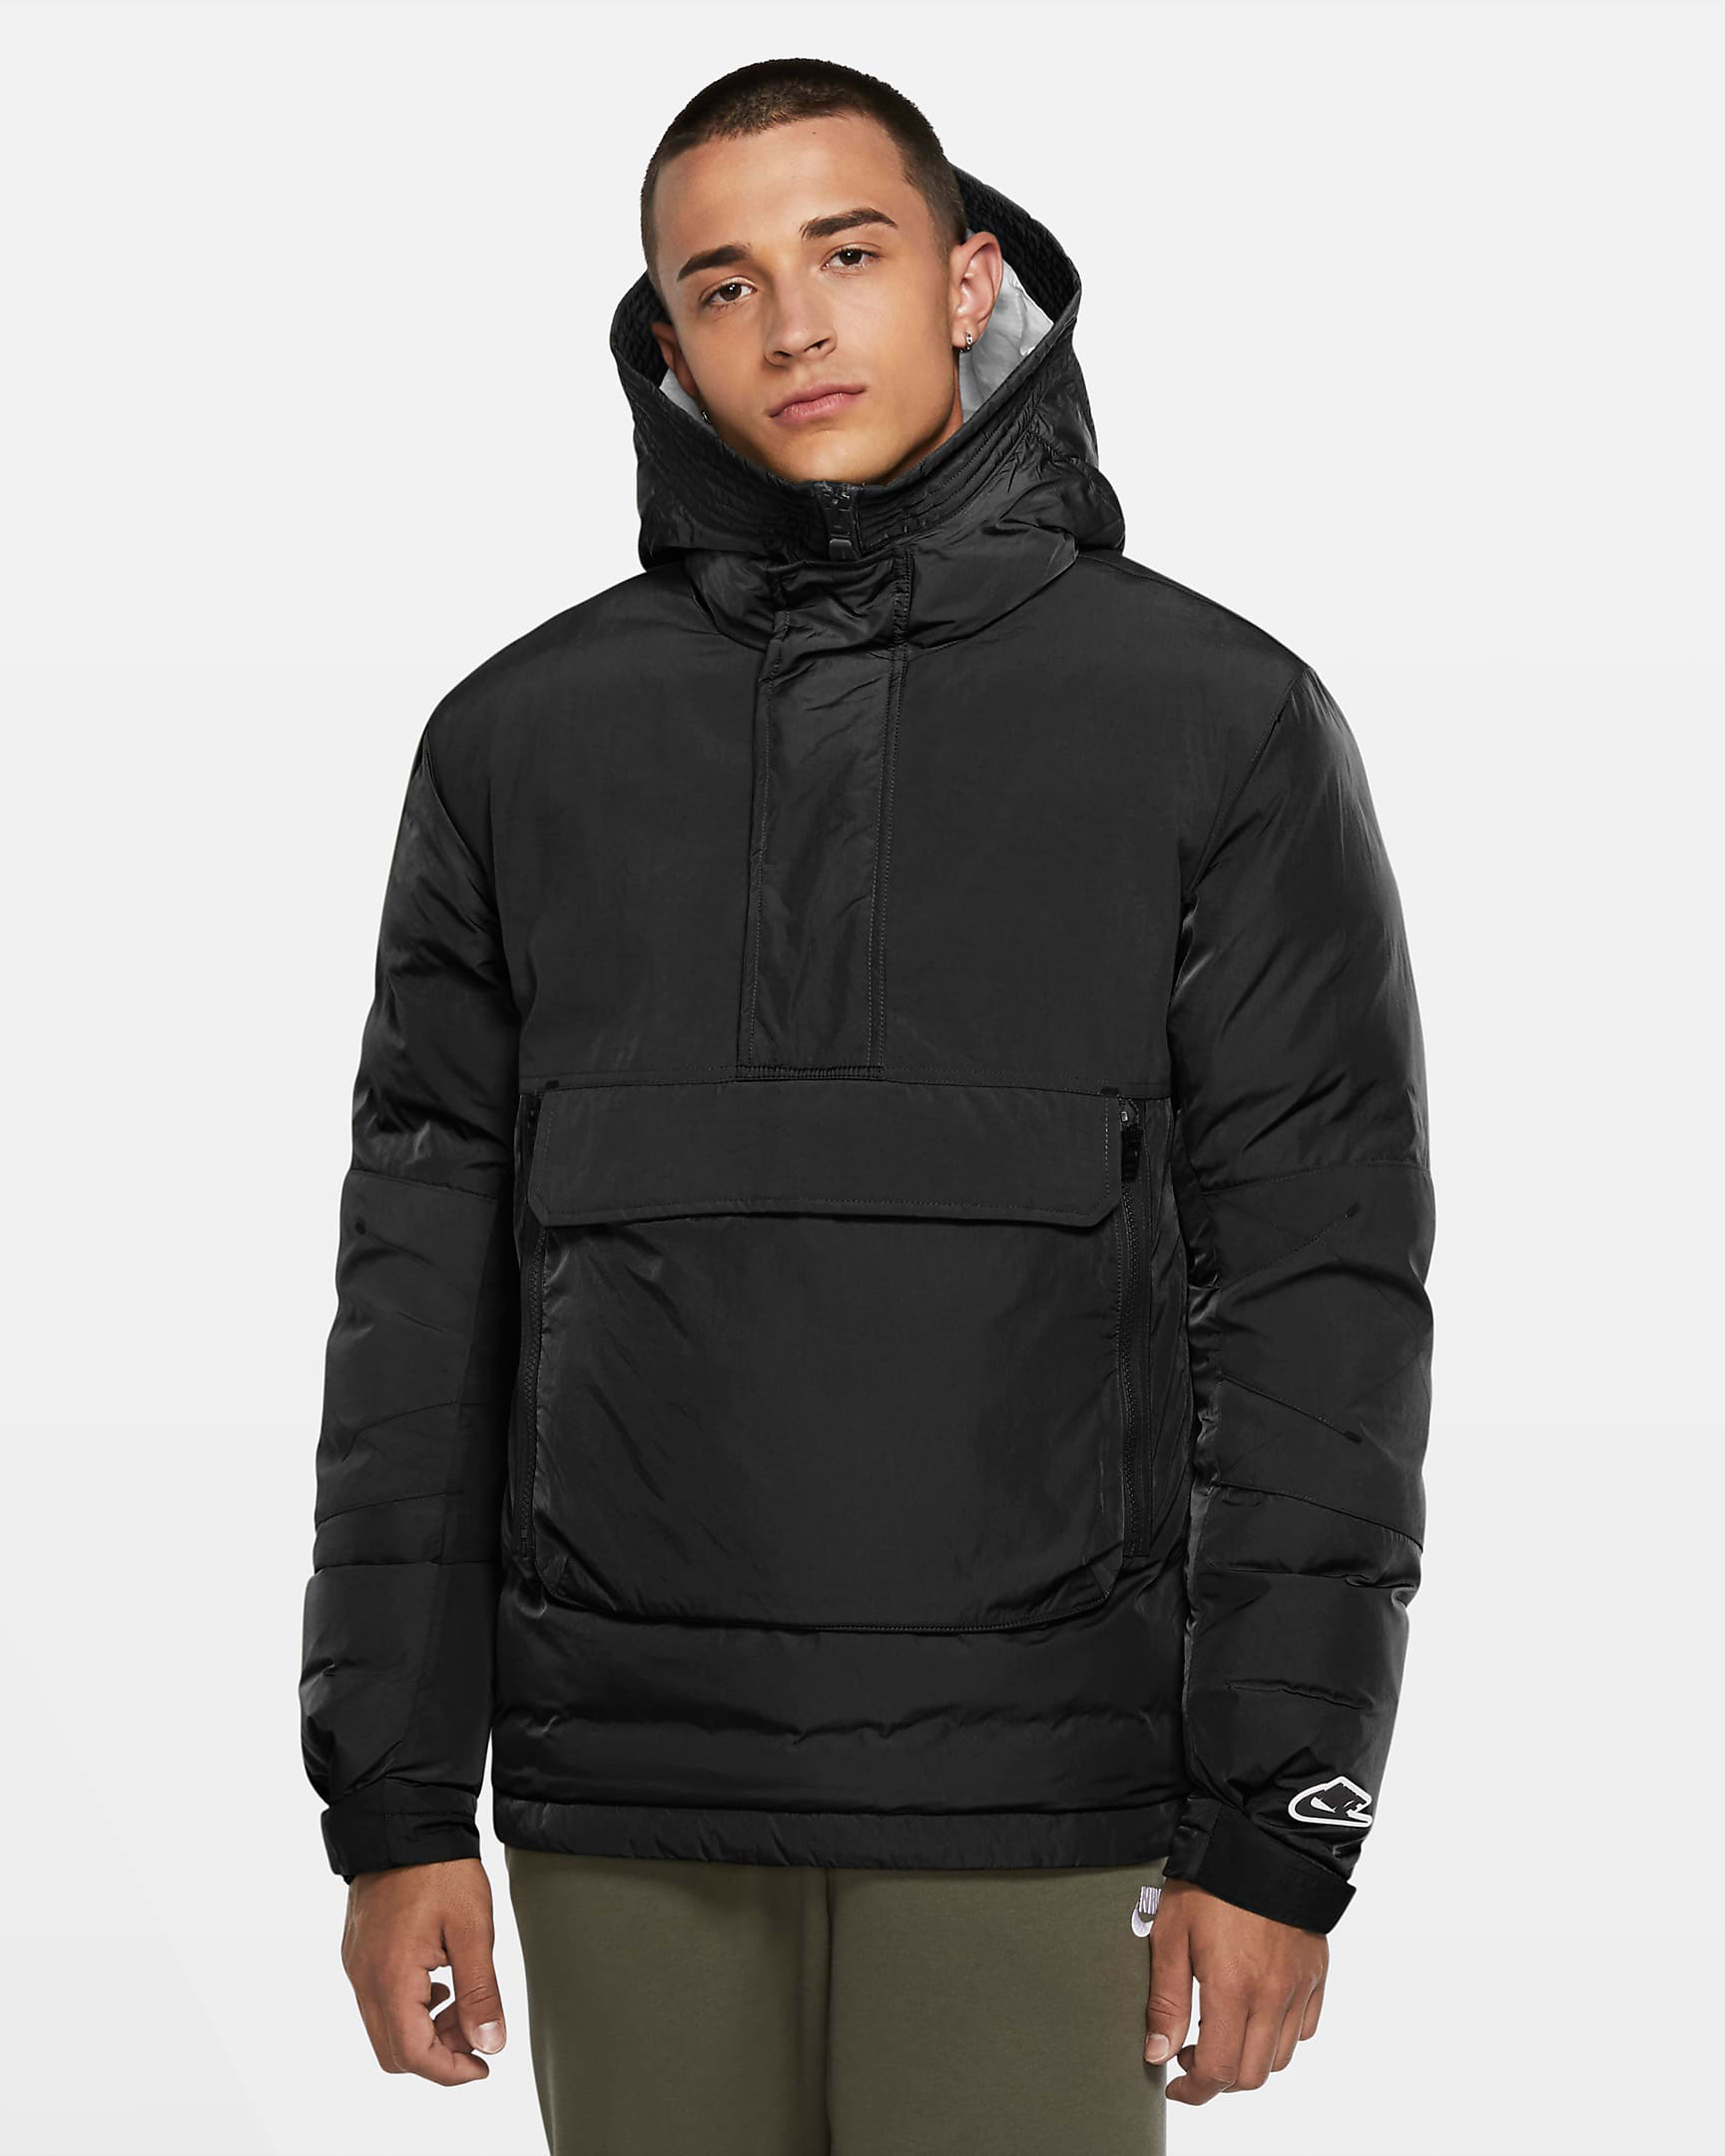 nike-foamposite-one-black-anthracite-winter-jacket-match